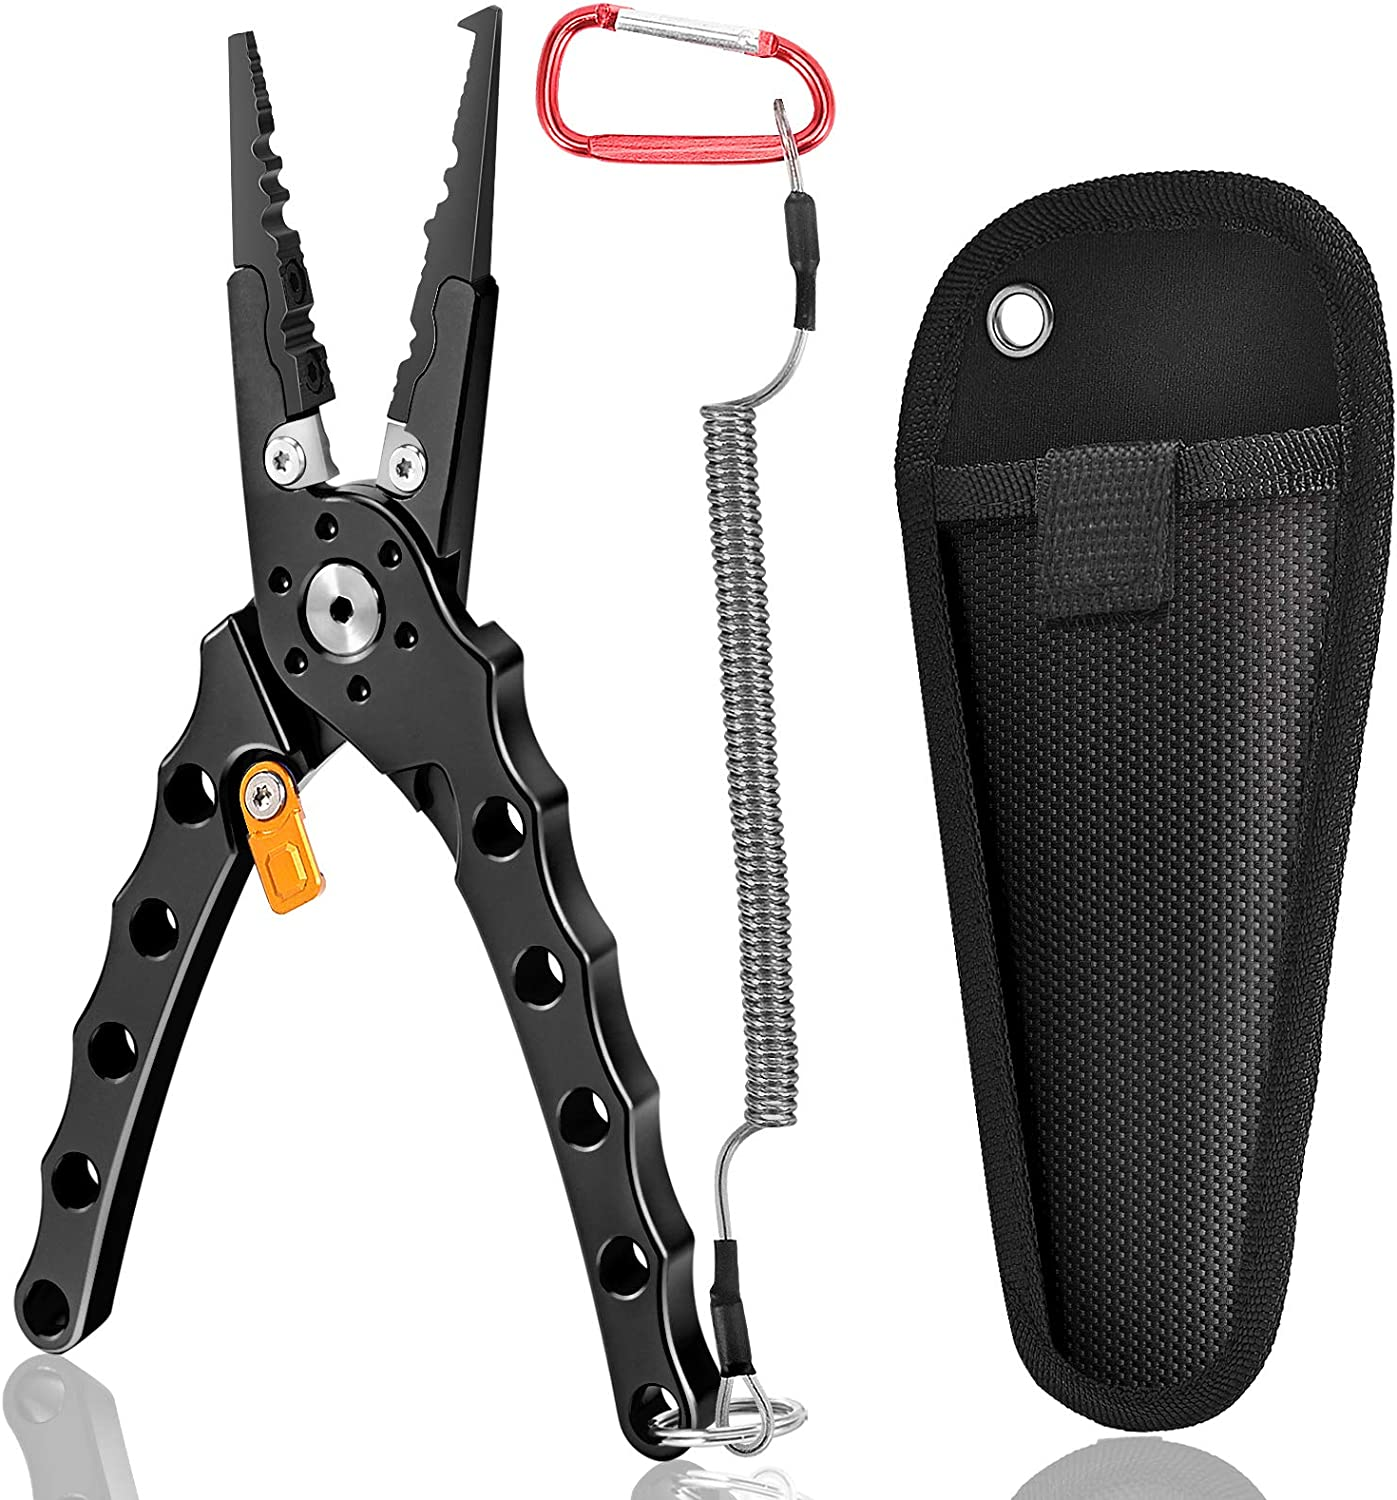 Discount is also underway FISHARE Aluminum Fishing Pliers Fish Weighing with Lip At the price Gripper